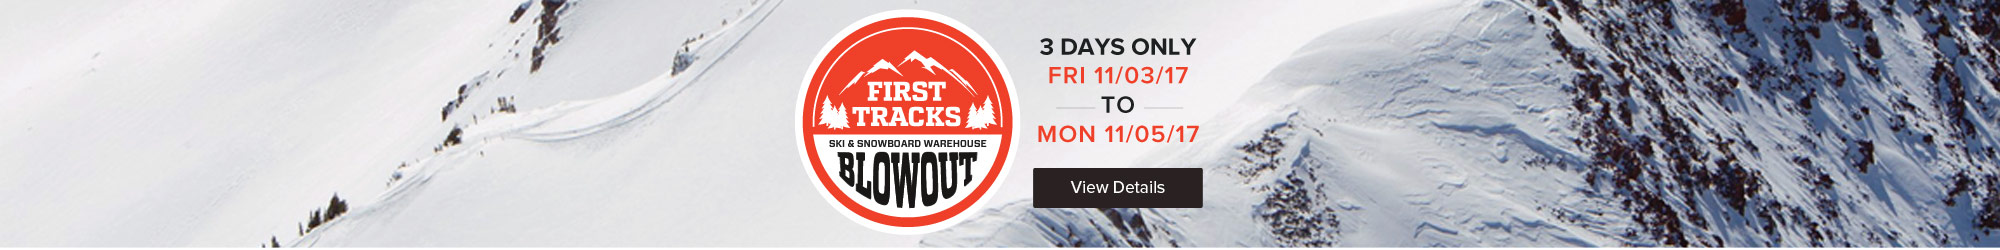 First Tracks Ski & Snowboard Blowout. 3 Days Only! View Details.